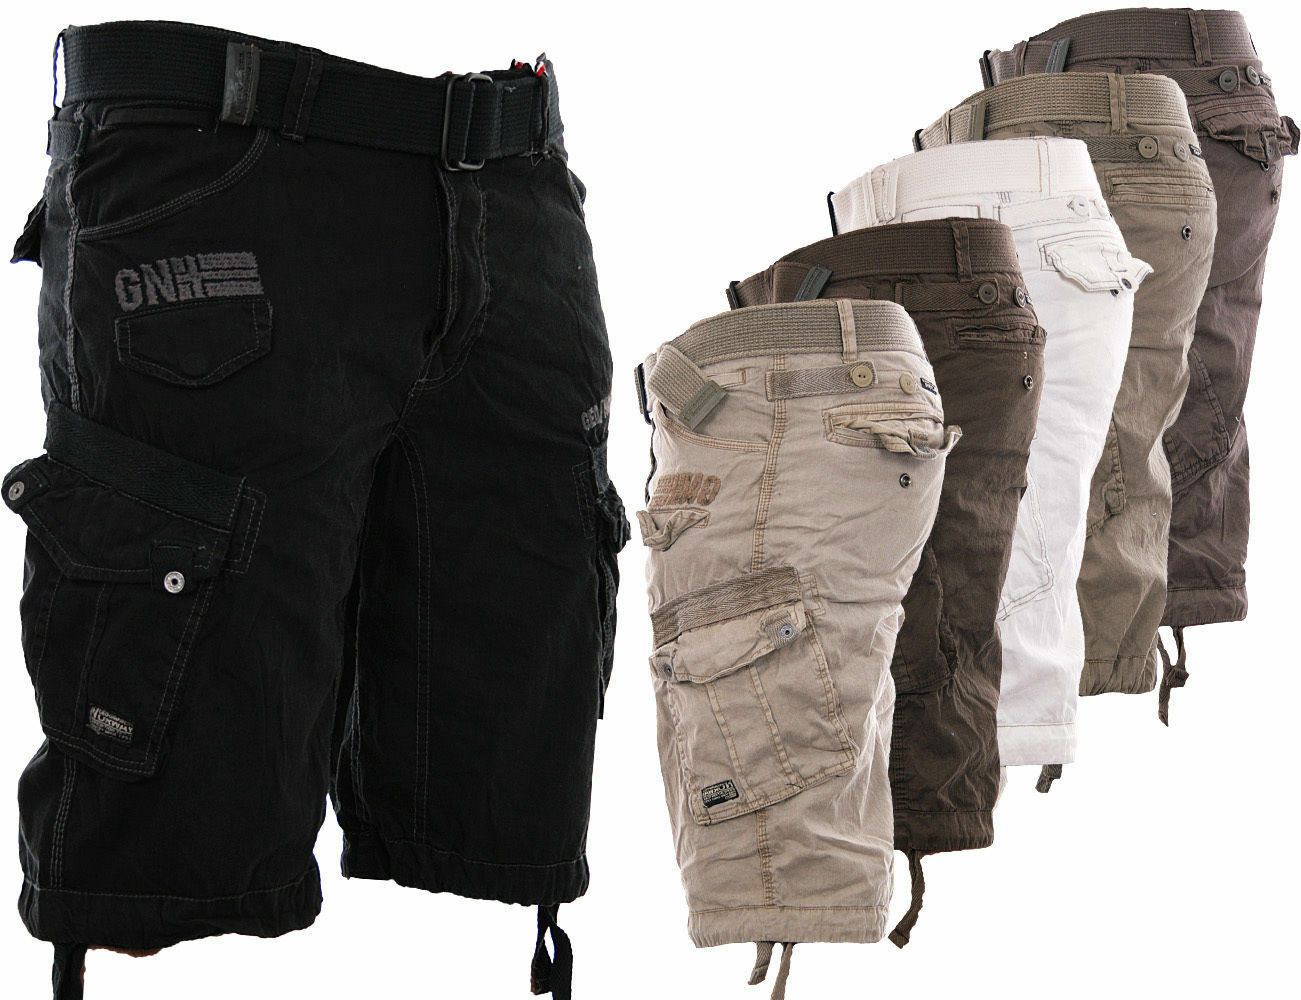 geographical norway herren cargo shorts kurze hose short bermuda g rtel sommer eur 39 95. Black Bedroom Furniture Sets. Home Design Ideas